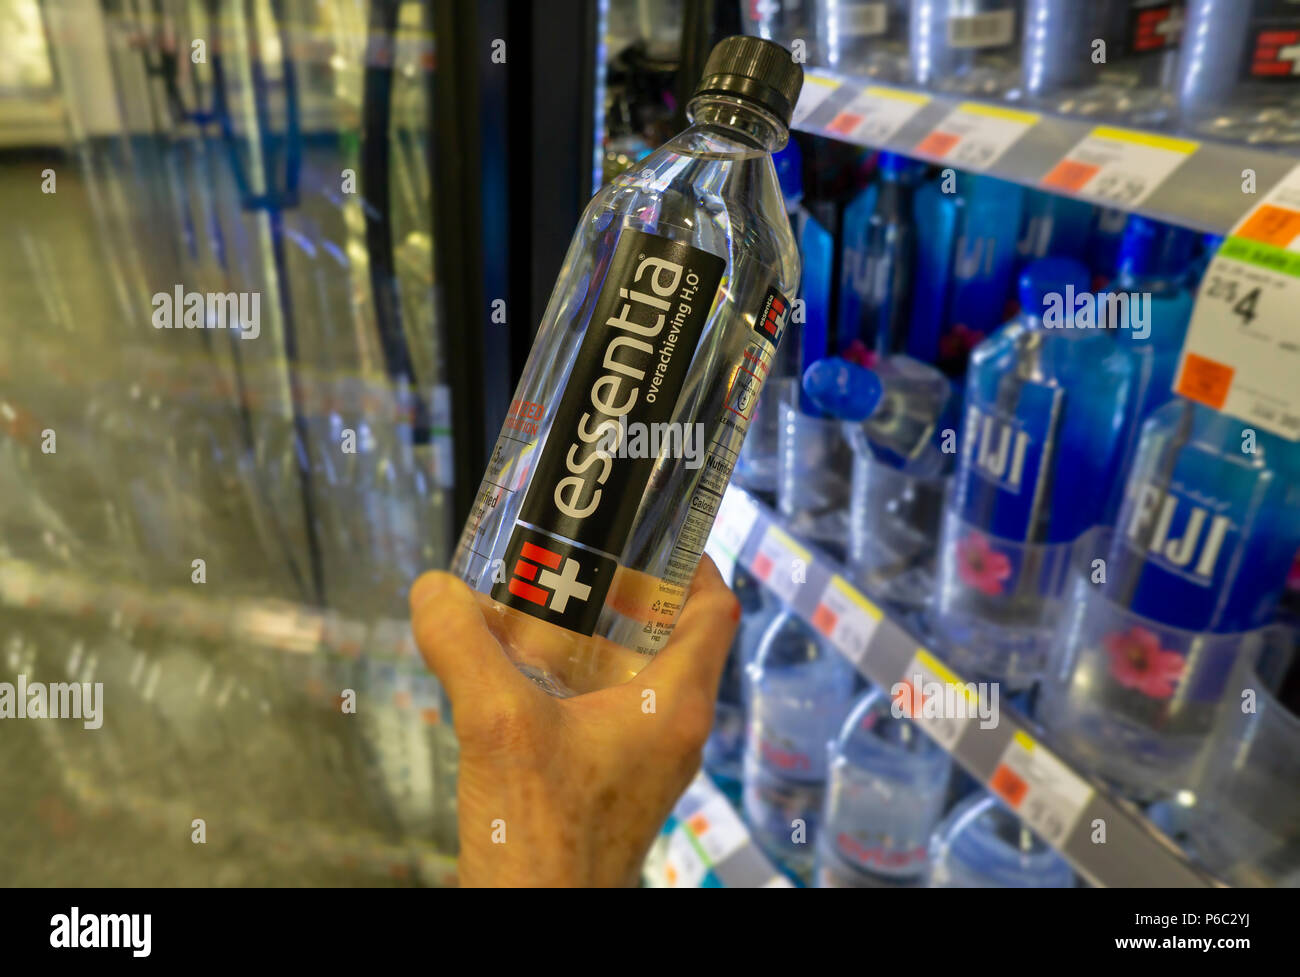 Pepsico Products Stock Photos & Pepsico Products Stock Images - Alamy